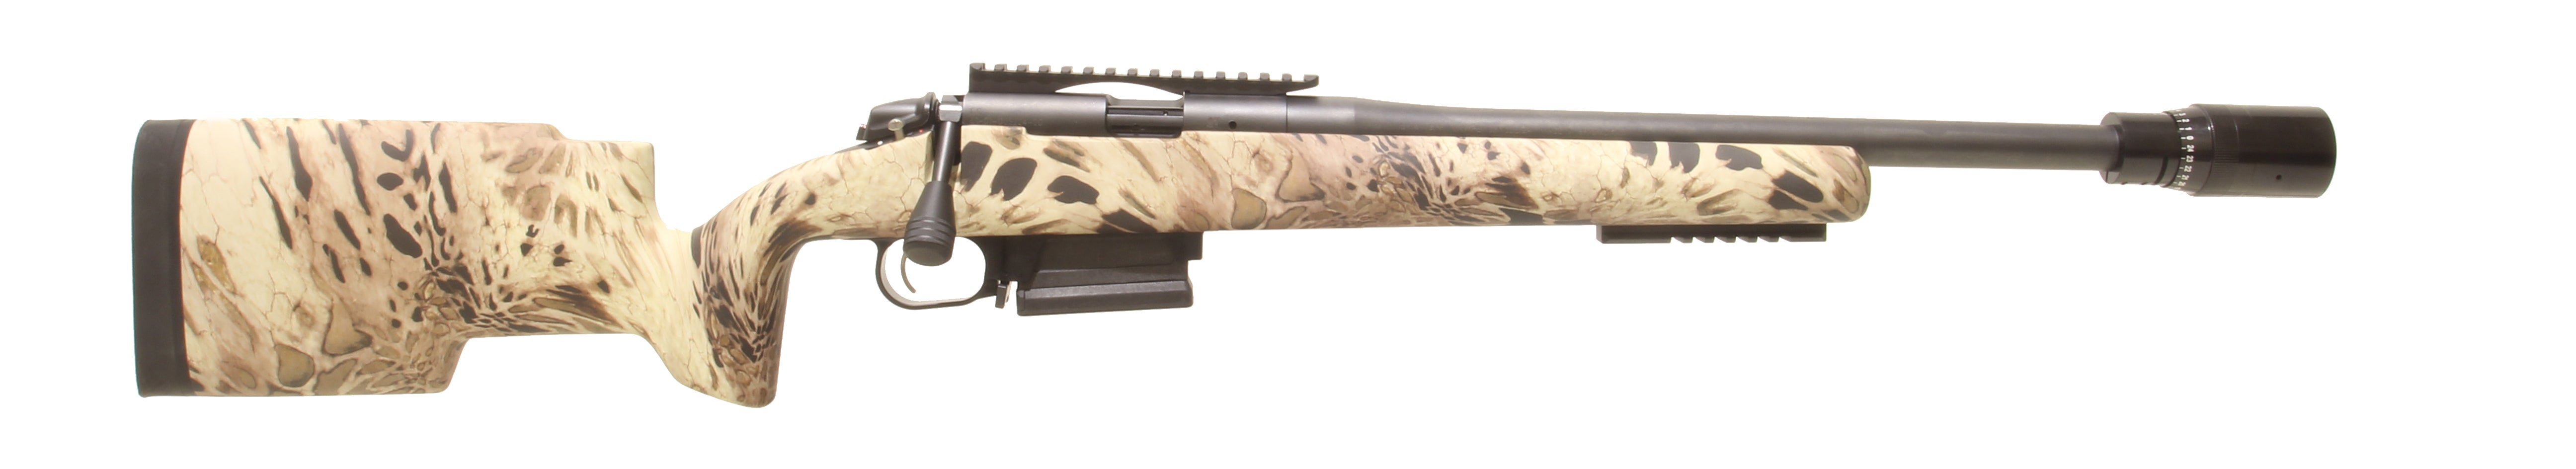 APR Custom 22 Long Rifle